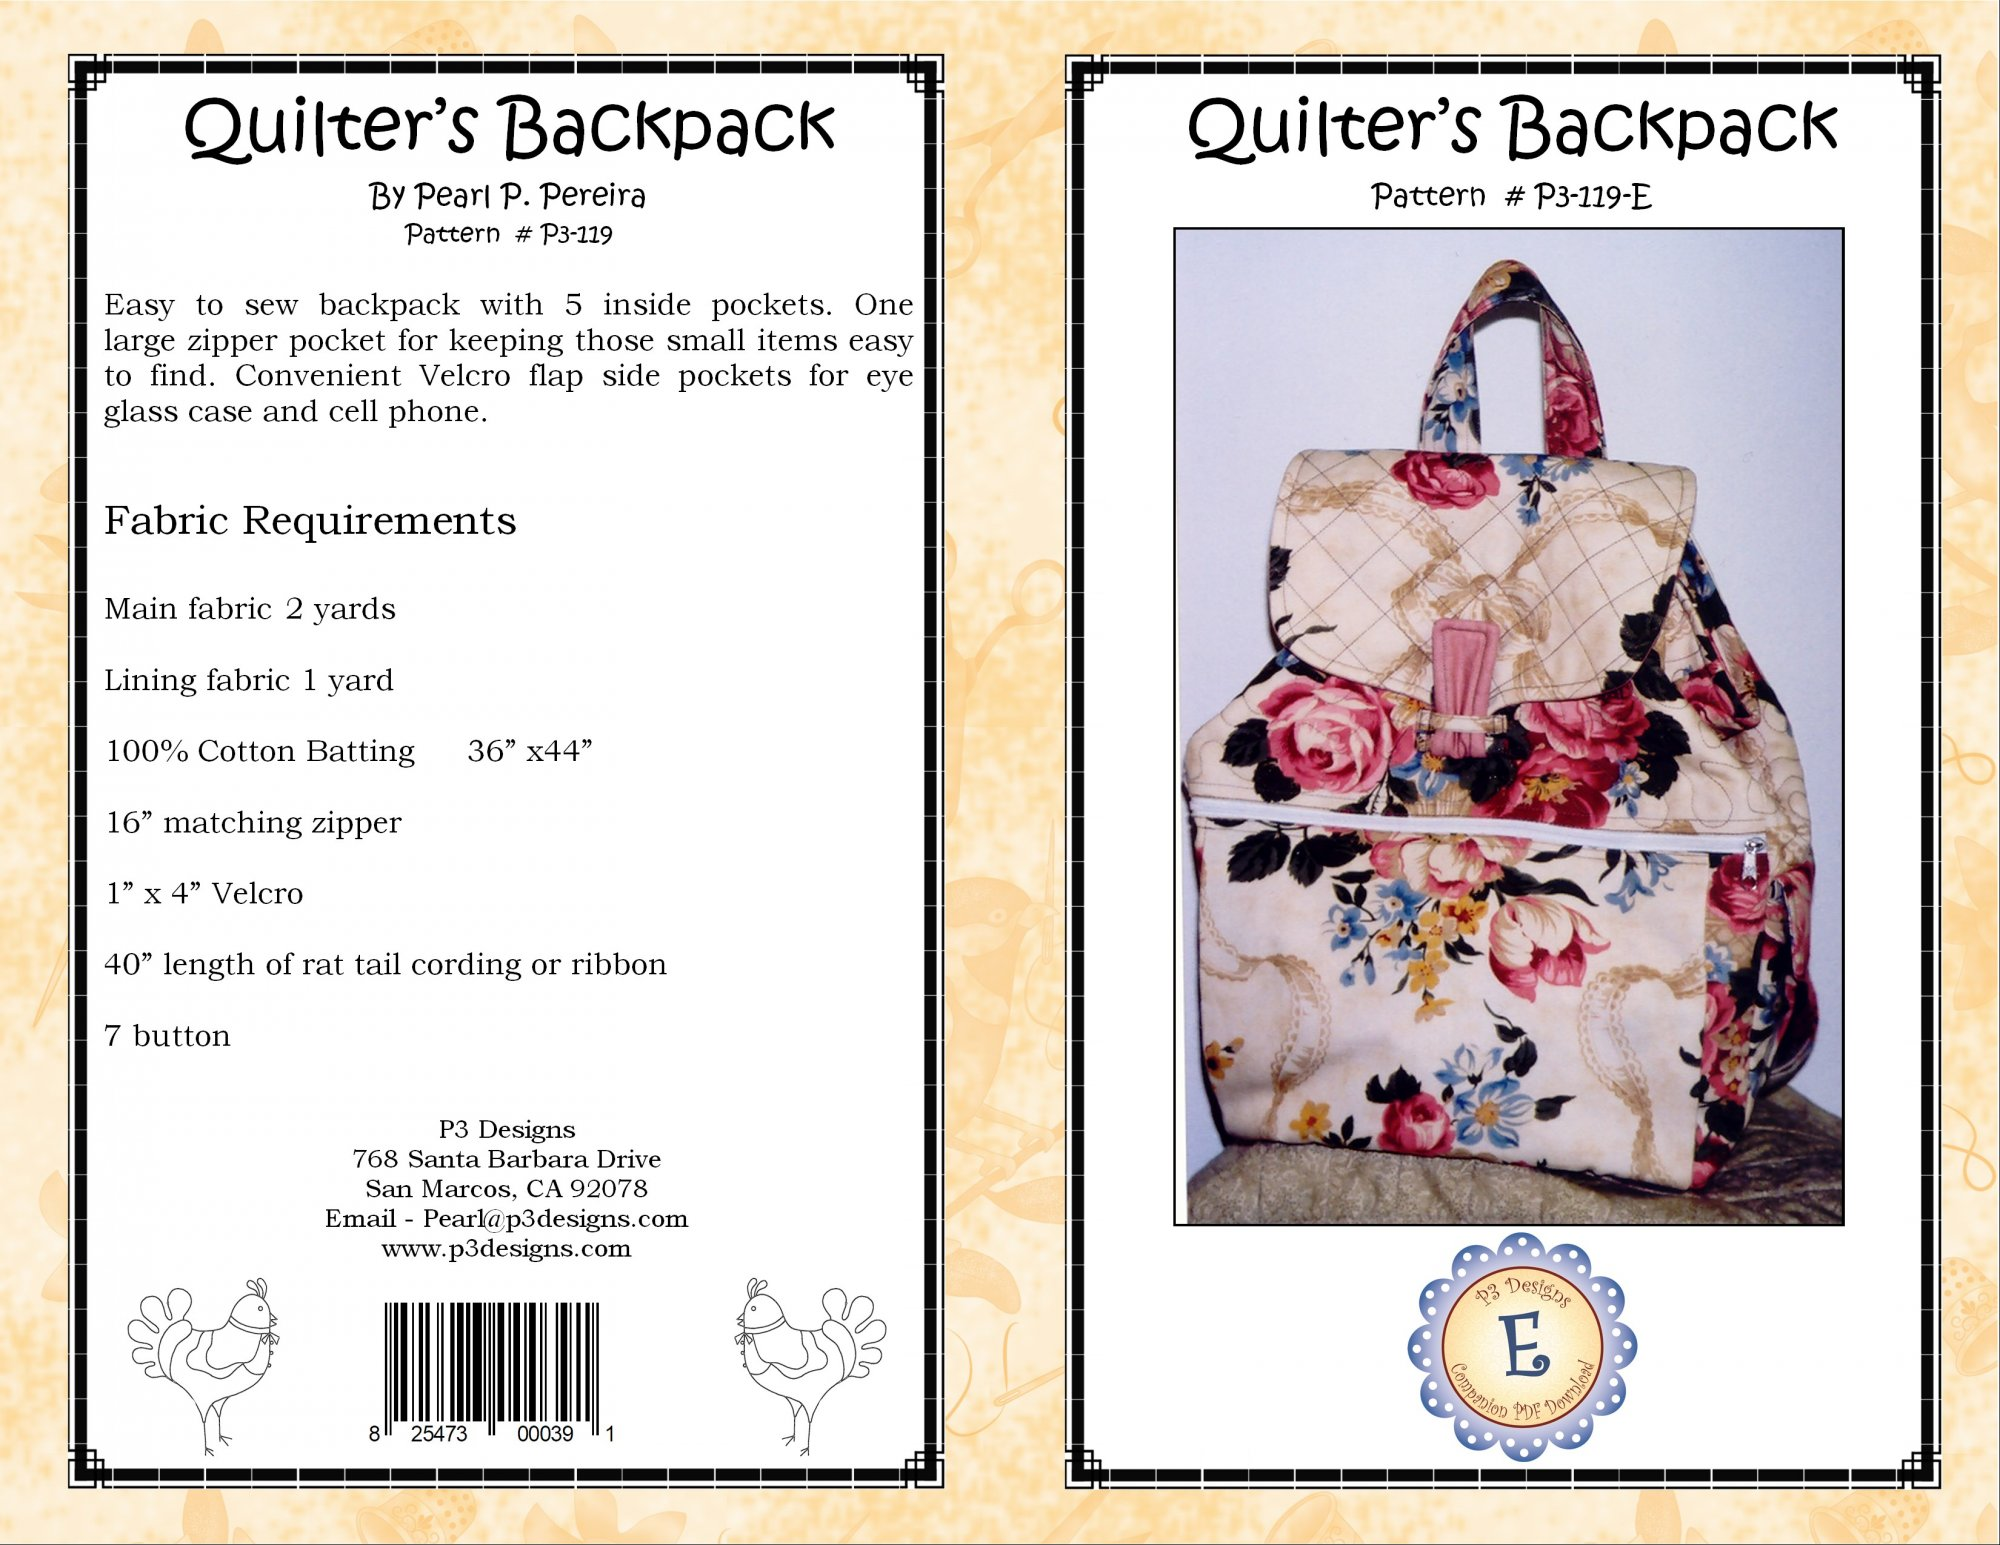 P3-119-E Quilter's Backpack PDF Pattern